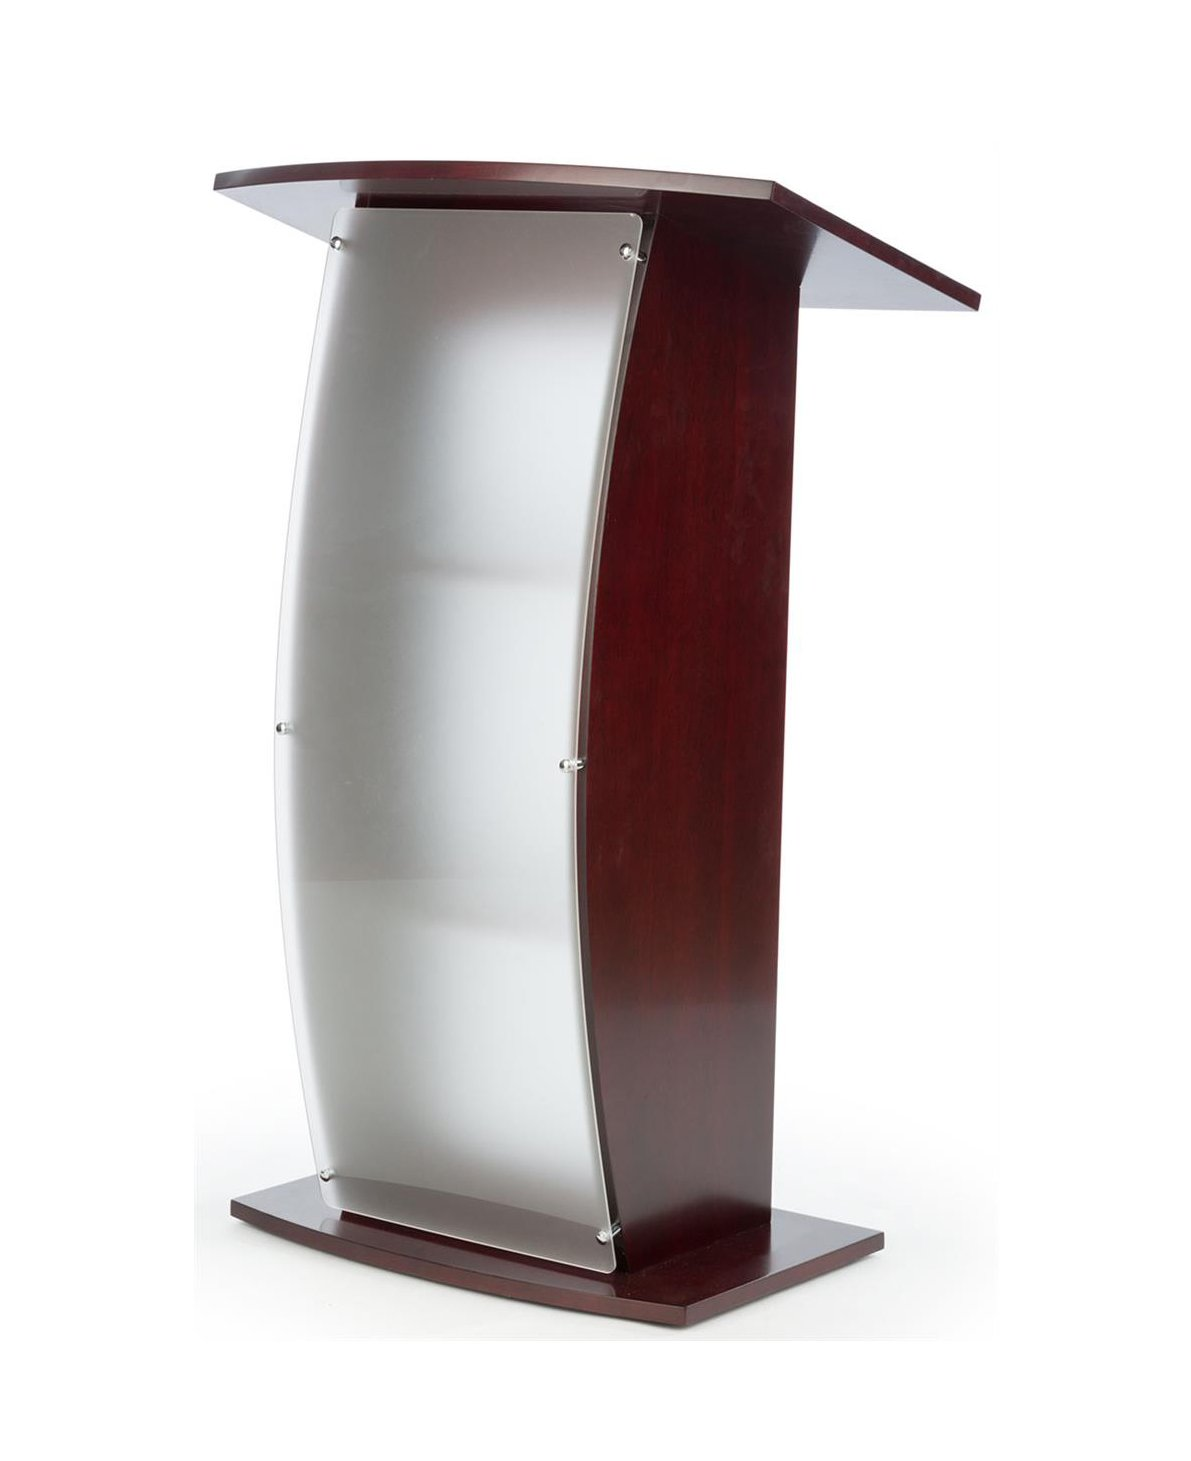 FixtureDisplays 44.25'' Tall Podium for Floor, Curved Frosted Front Acrylic Panel - Red Mahogany 19658 by FixtureDisplays